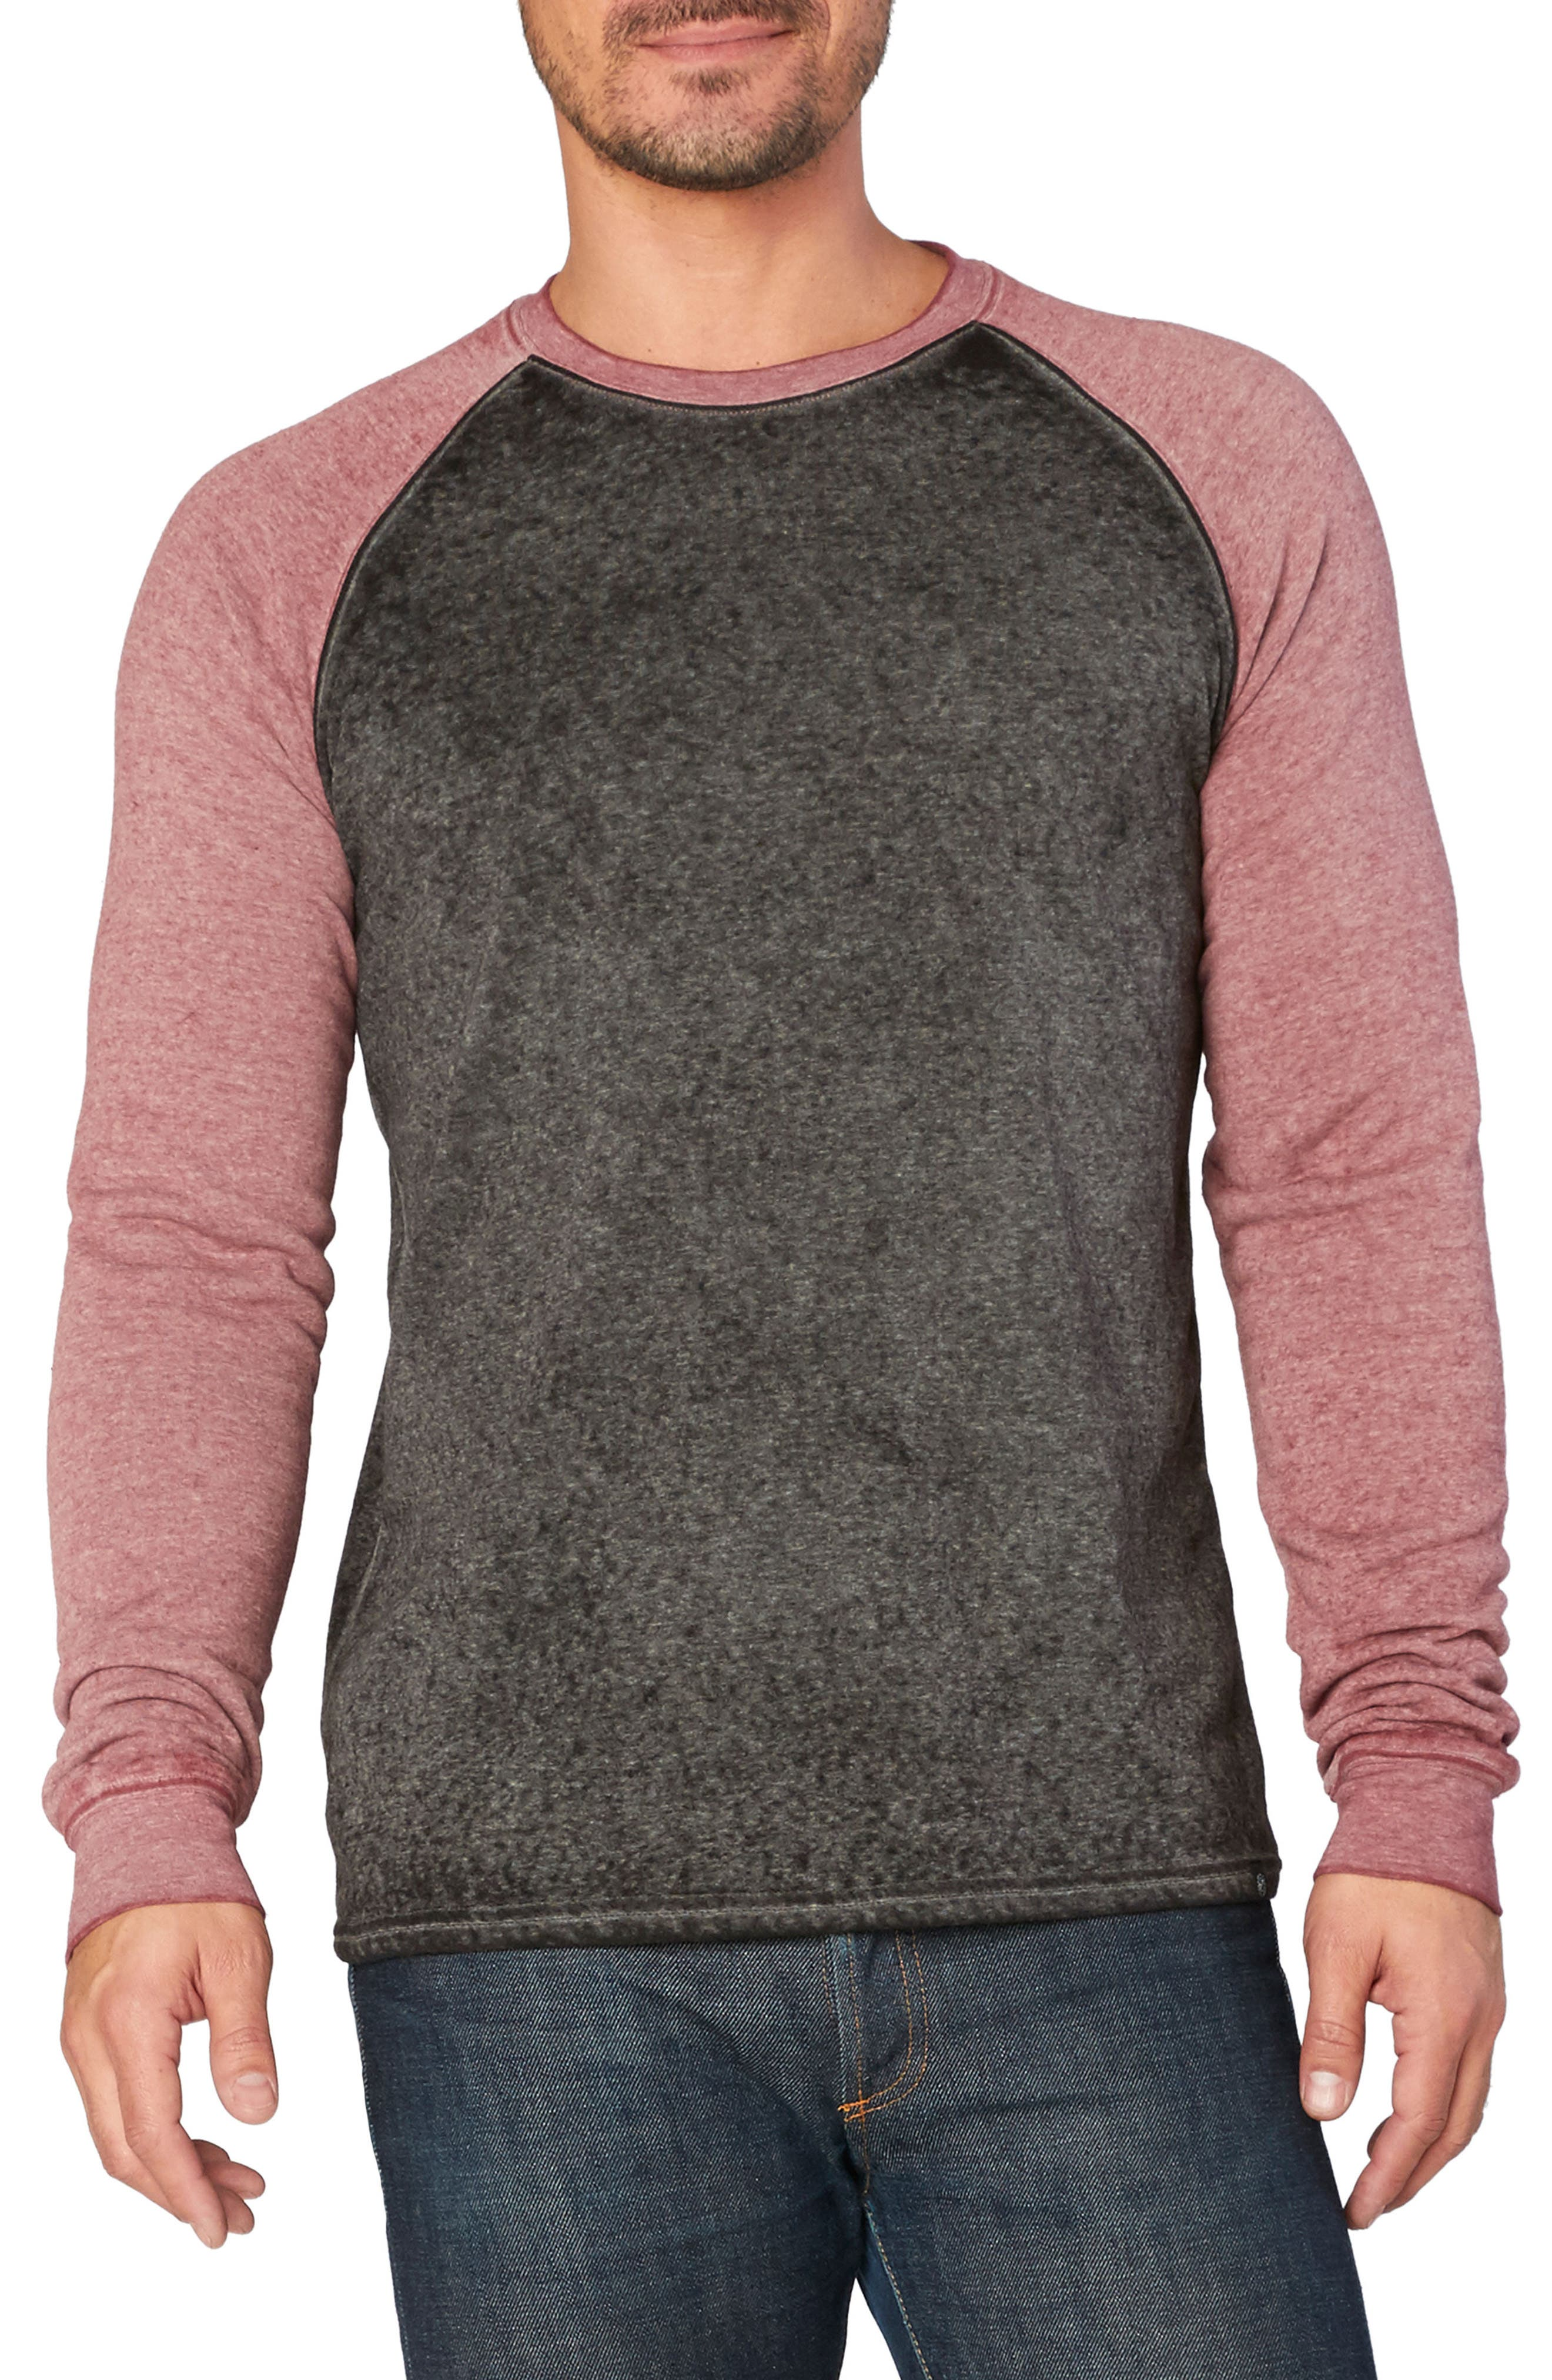 Threads for Thought Washed Raglan Sleeve Sweatshirt